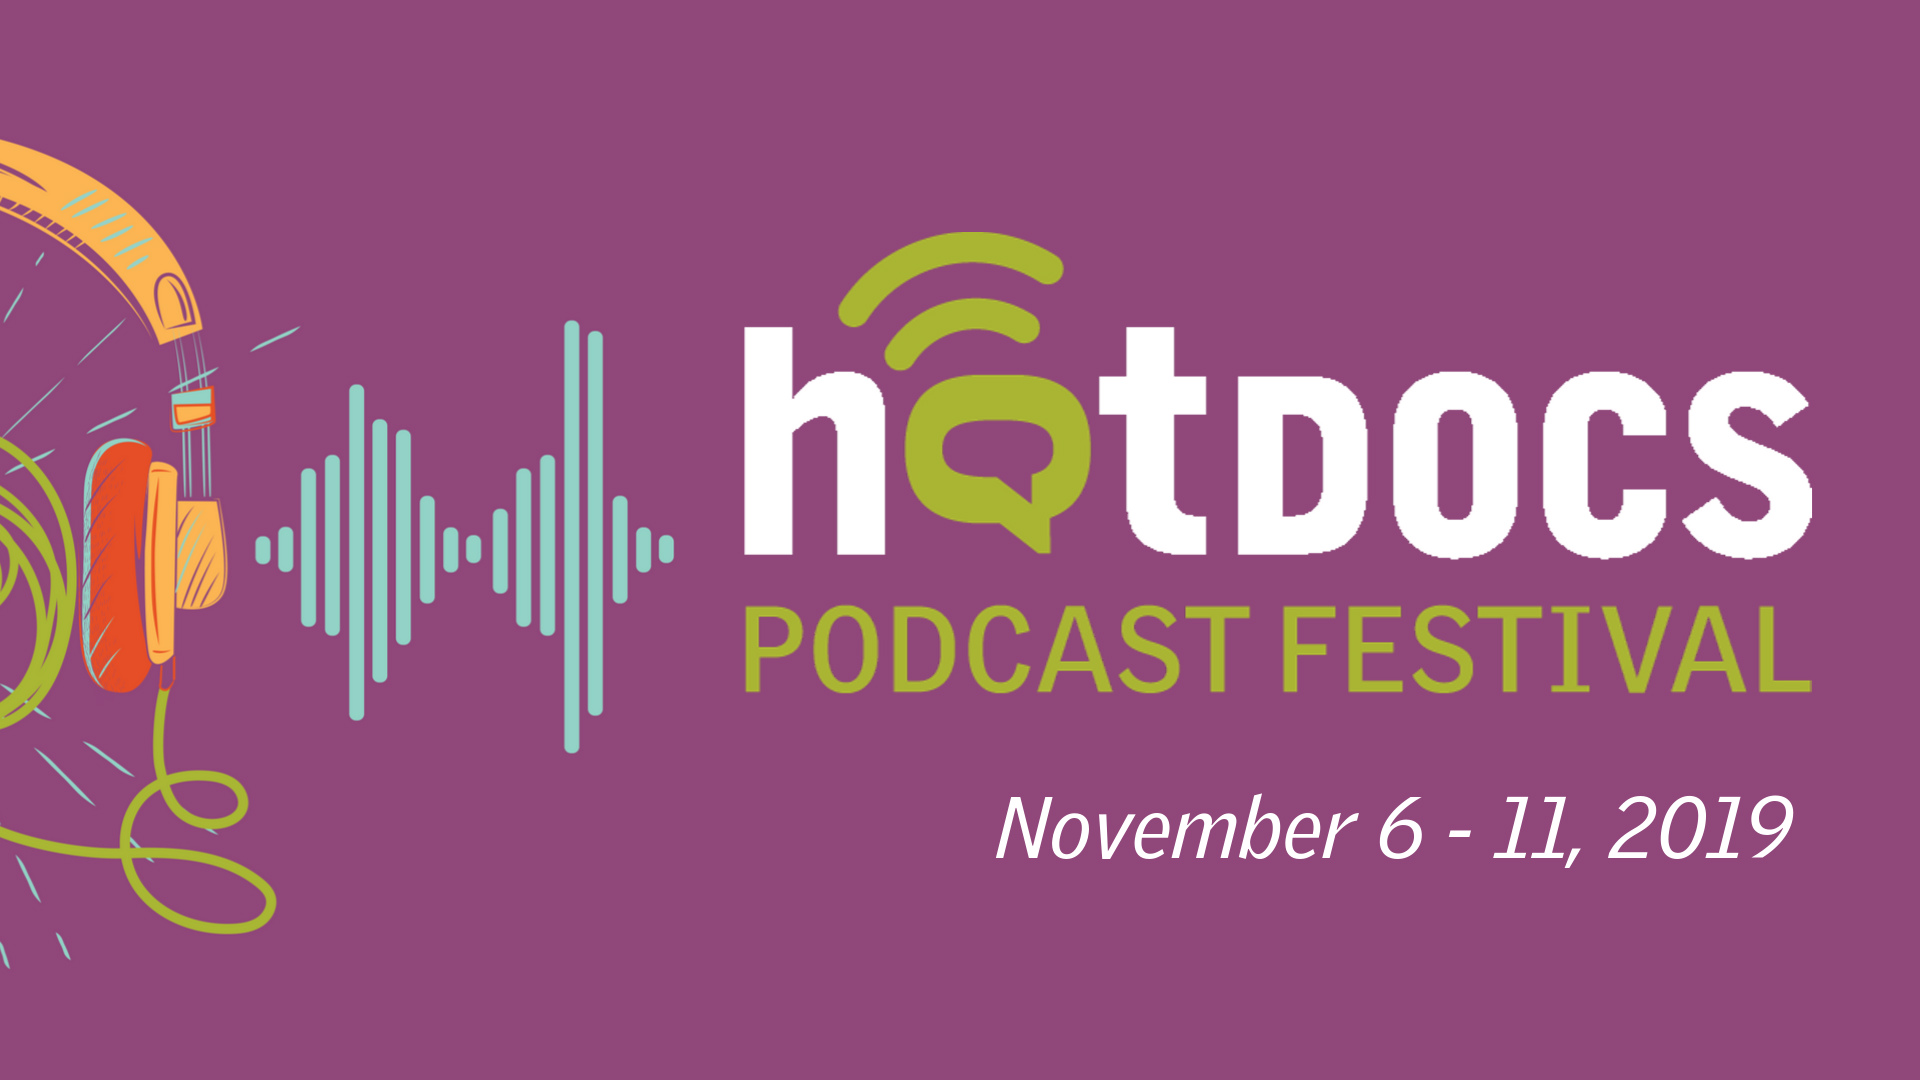 Hot Docs Podcast Festival 2019: Still Processing